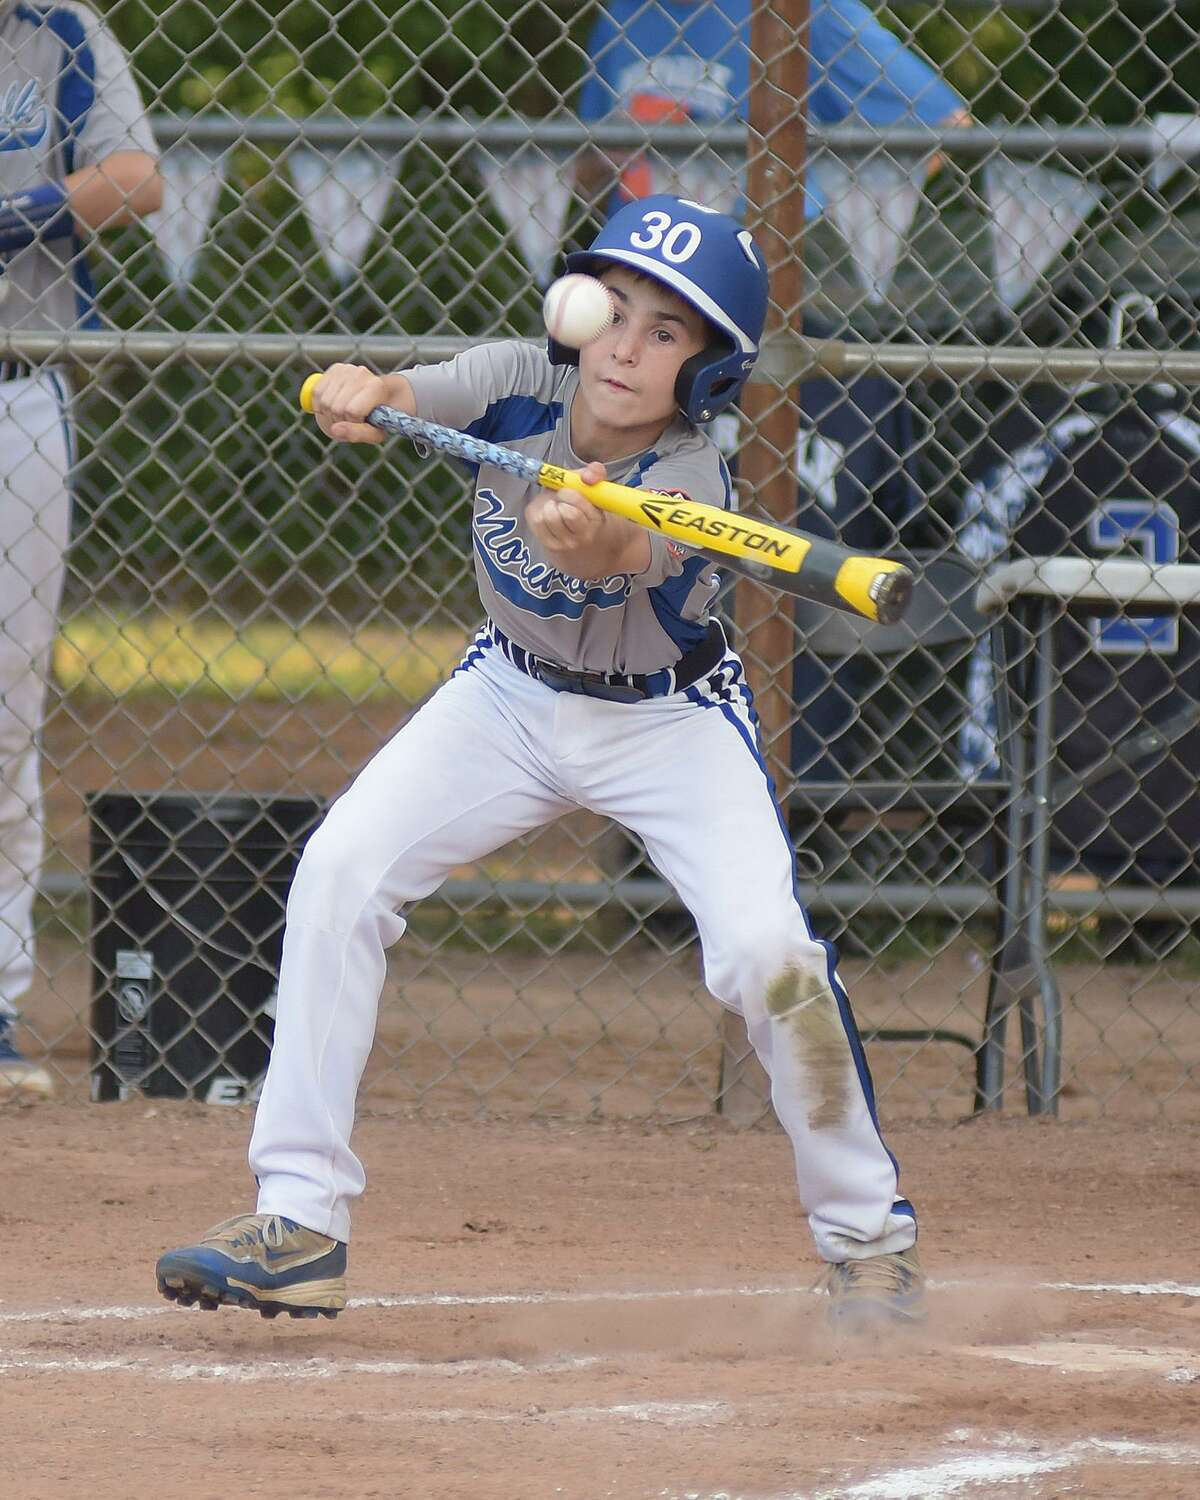 Norwalk's Will Stalzer lays down a bunt during Friday's Cal Ripken 12-year-old All-Star state championship game at Devine Field in Norwalk. Norwalk defeated New Canaan 9-3 to claim its fourth straight age-group state title.